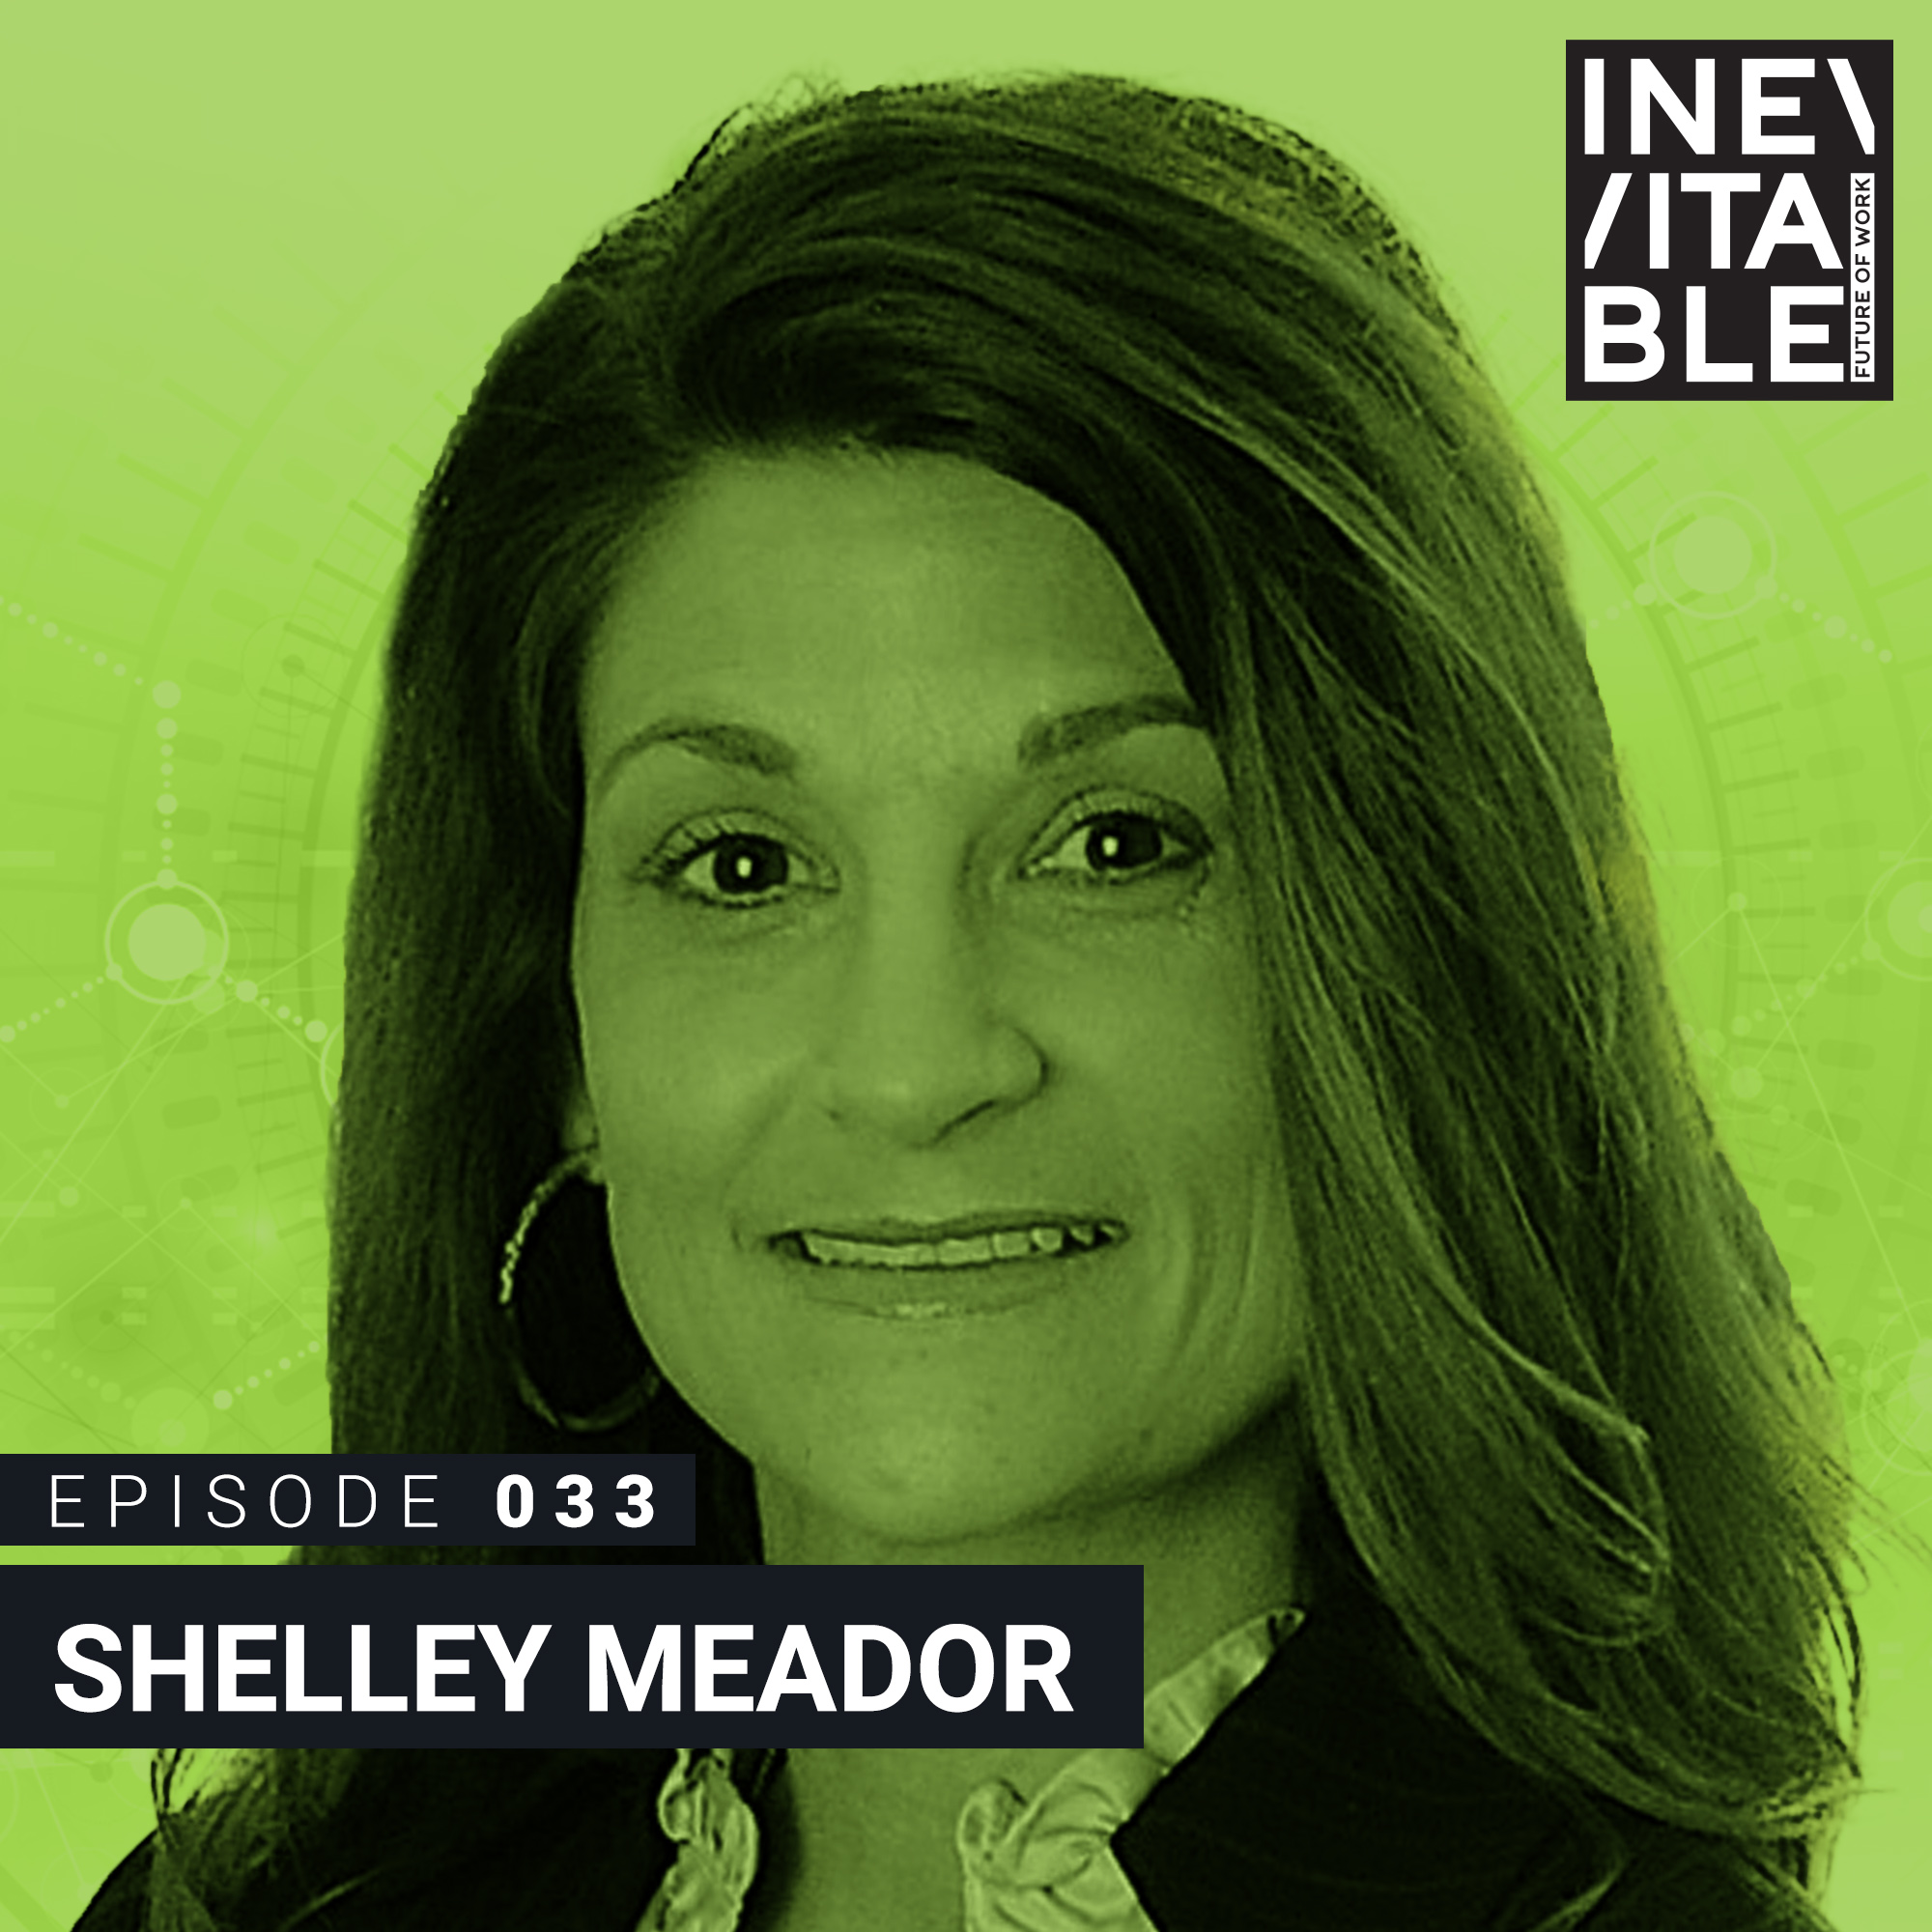 Shelley Meador